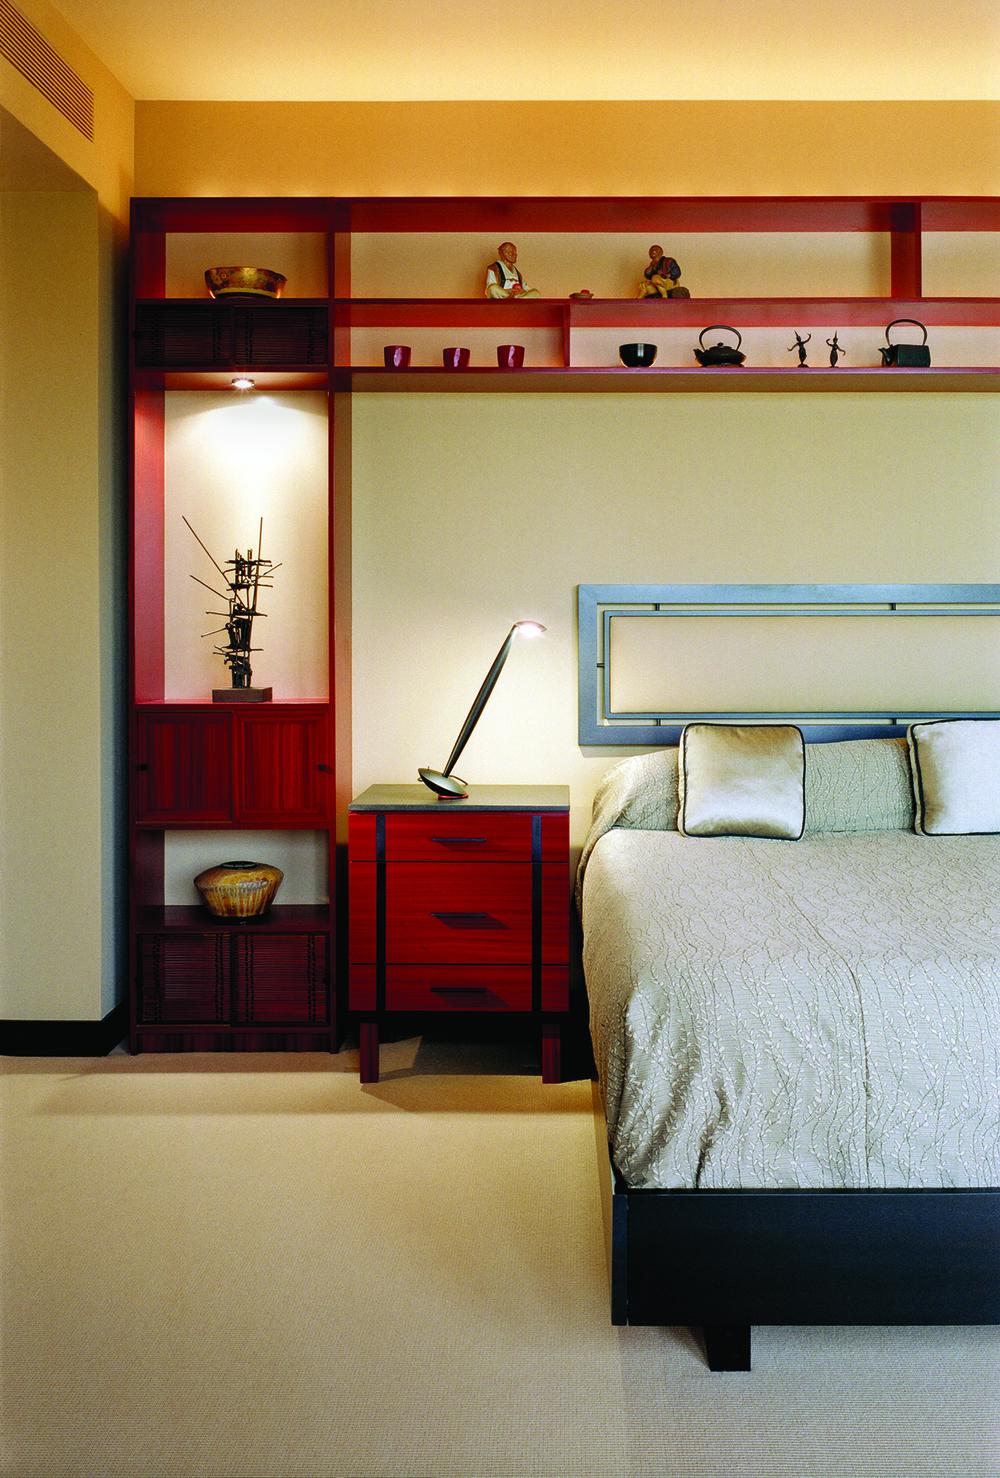 new-york-bedroom2-cotti.jpg